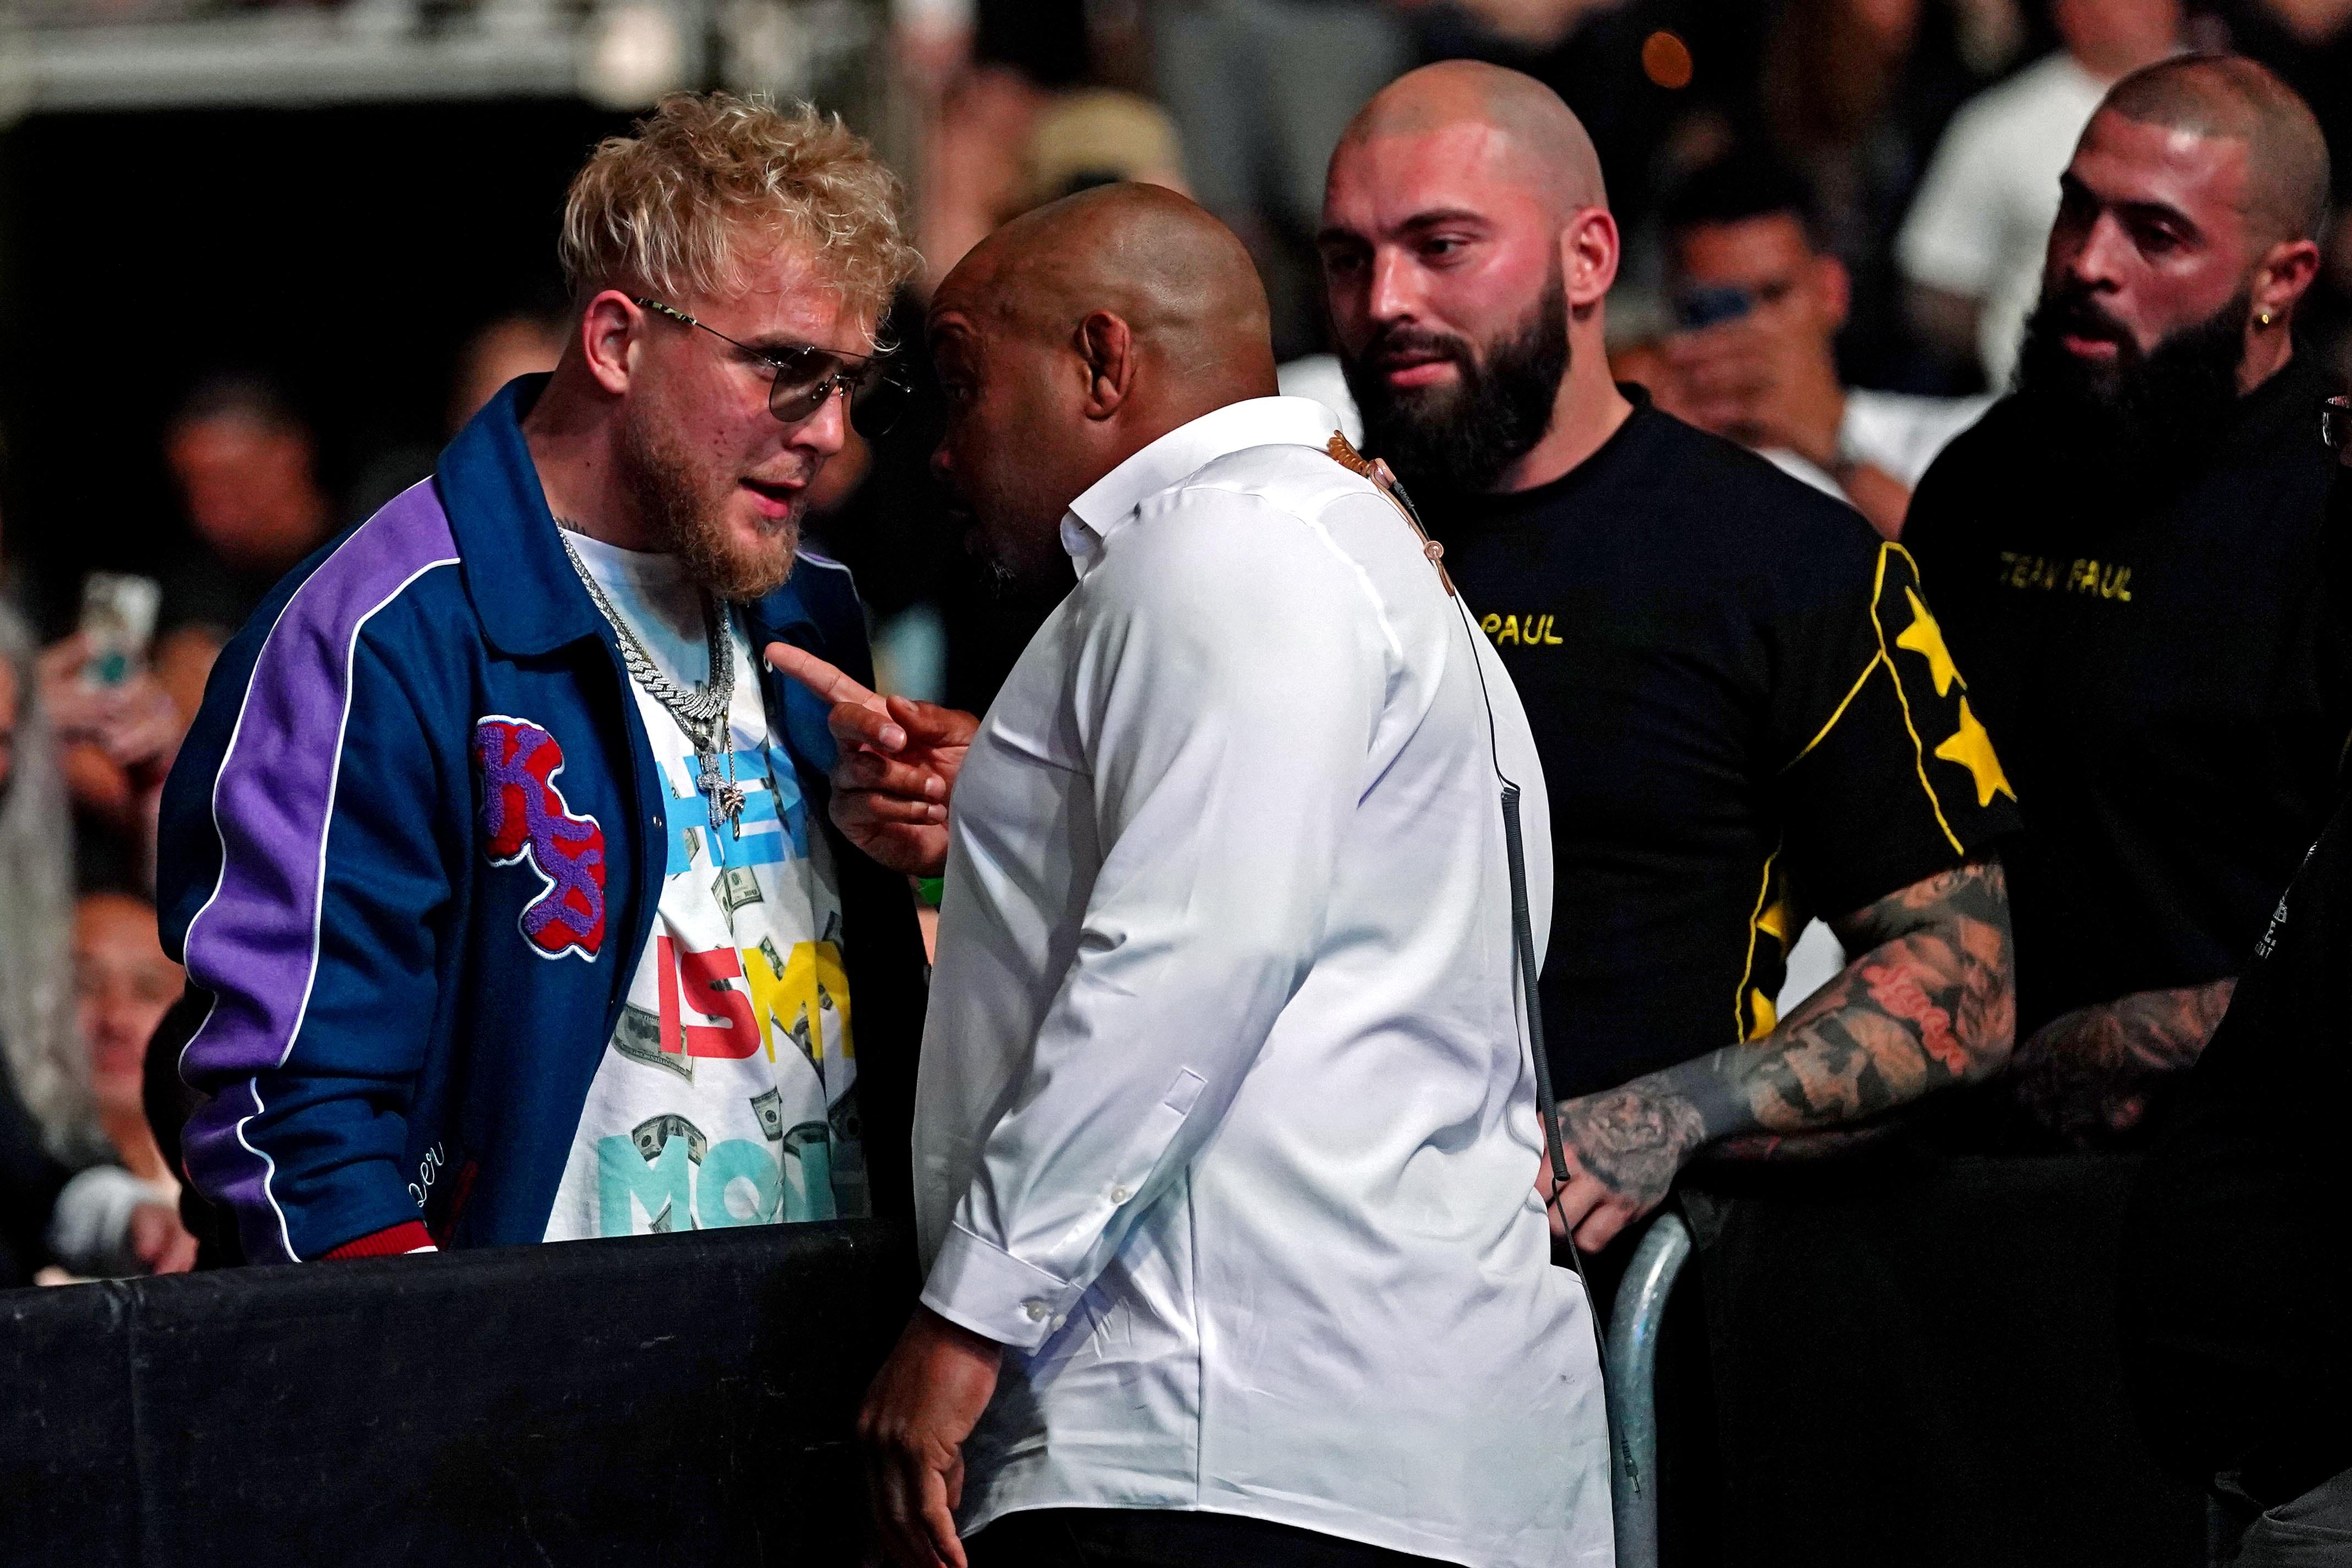 Watch: Daniel Cormier confronts Jake Paul in crowd at UFC 261